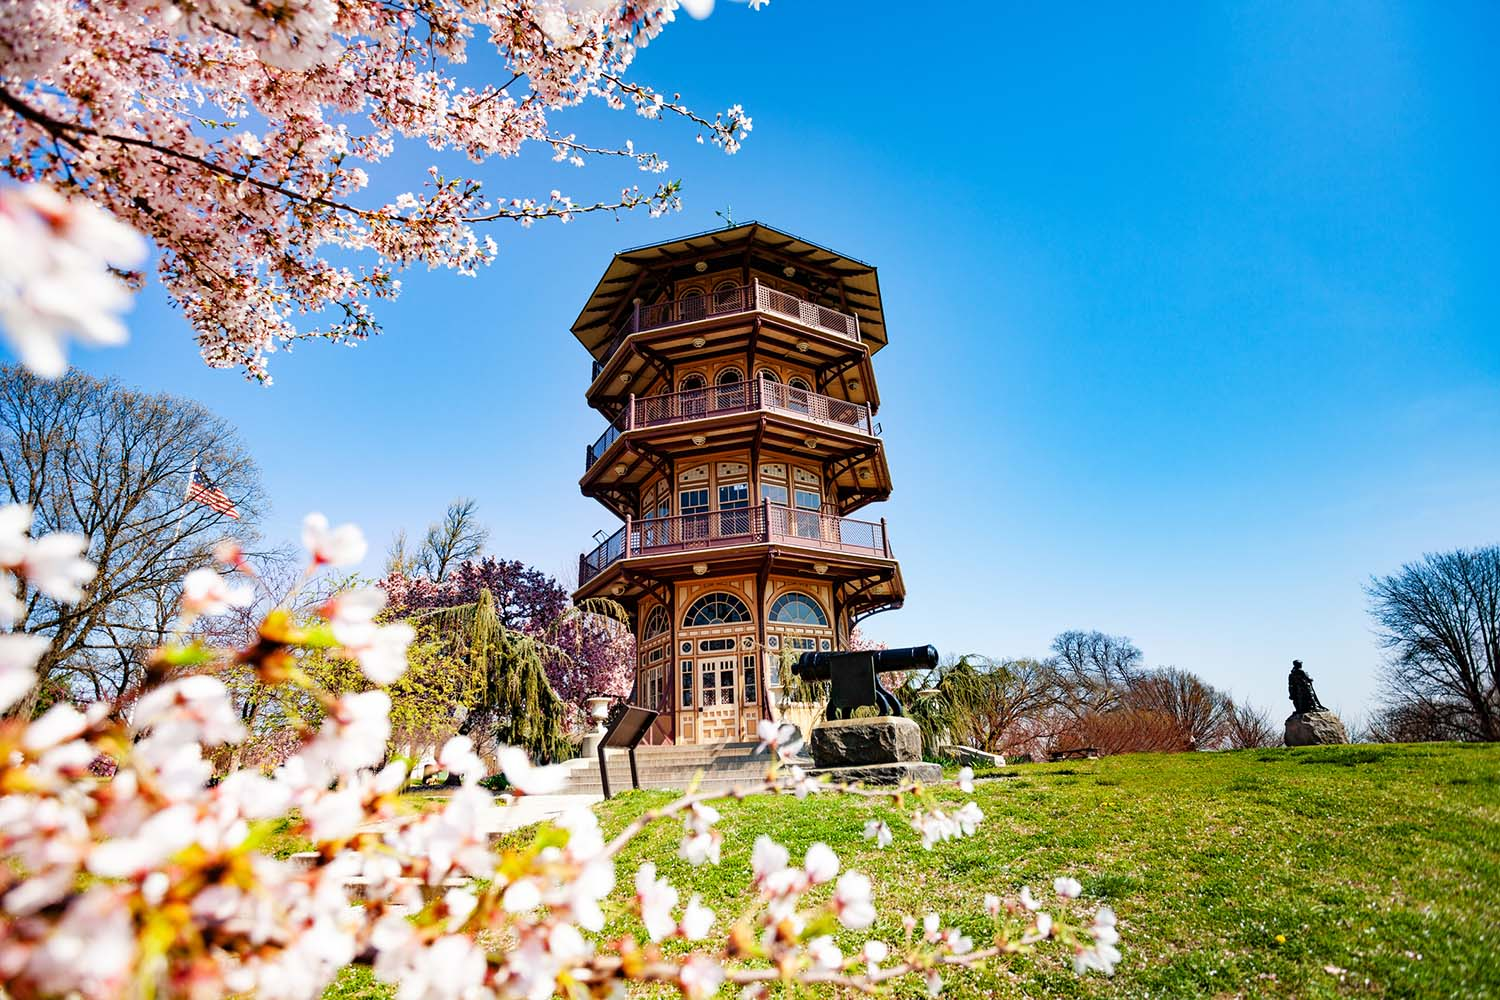 A pagoda structure towers over cherry blossoms in the foreground.